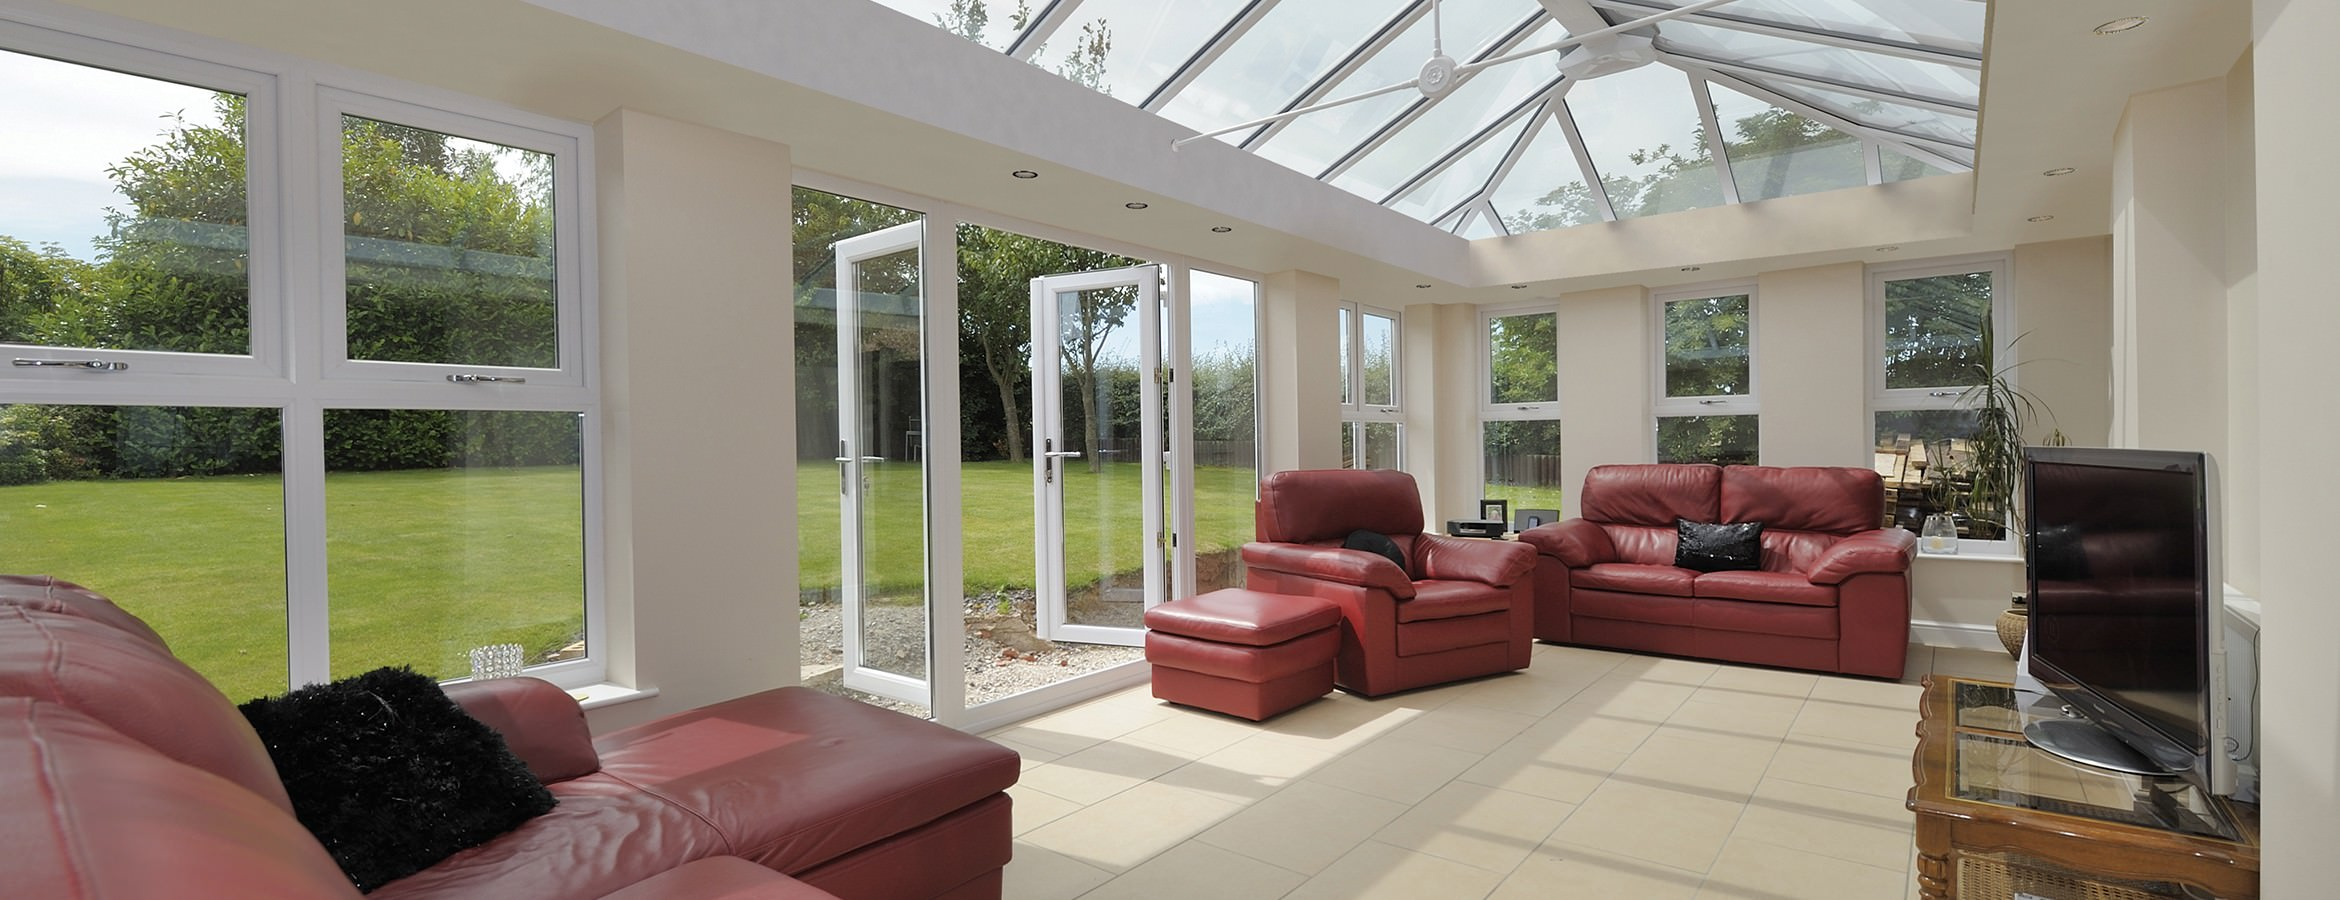 Orangeries Designs Bishops Stortford Essex